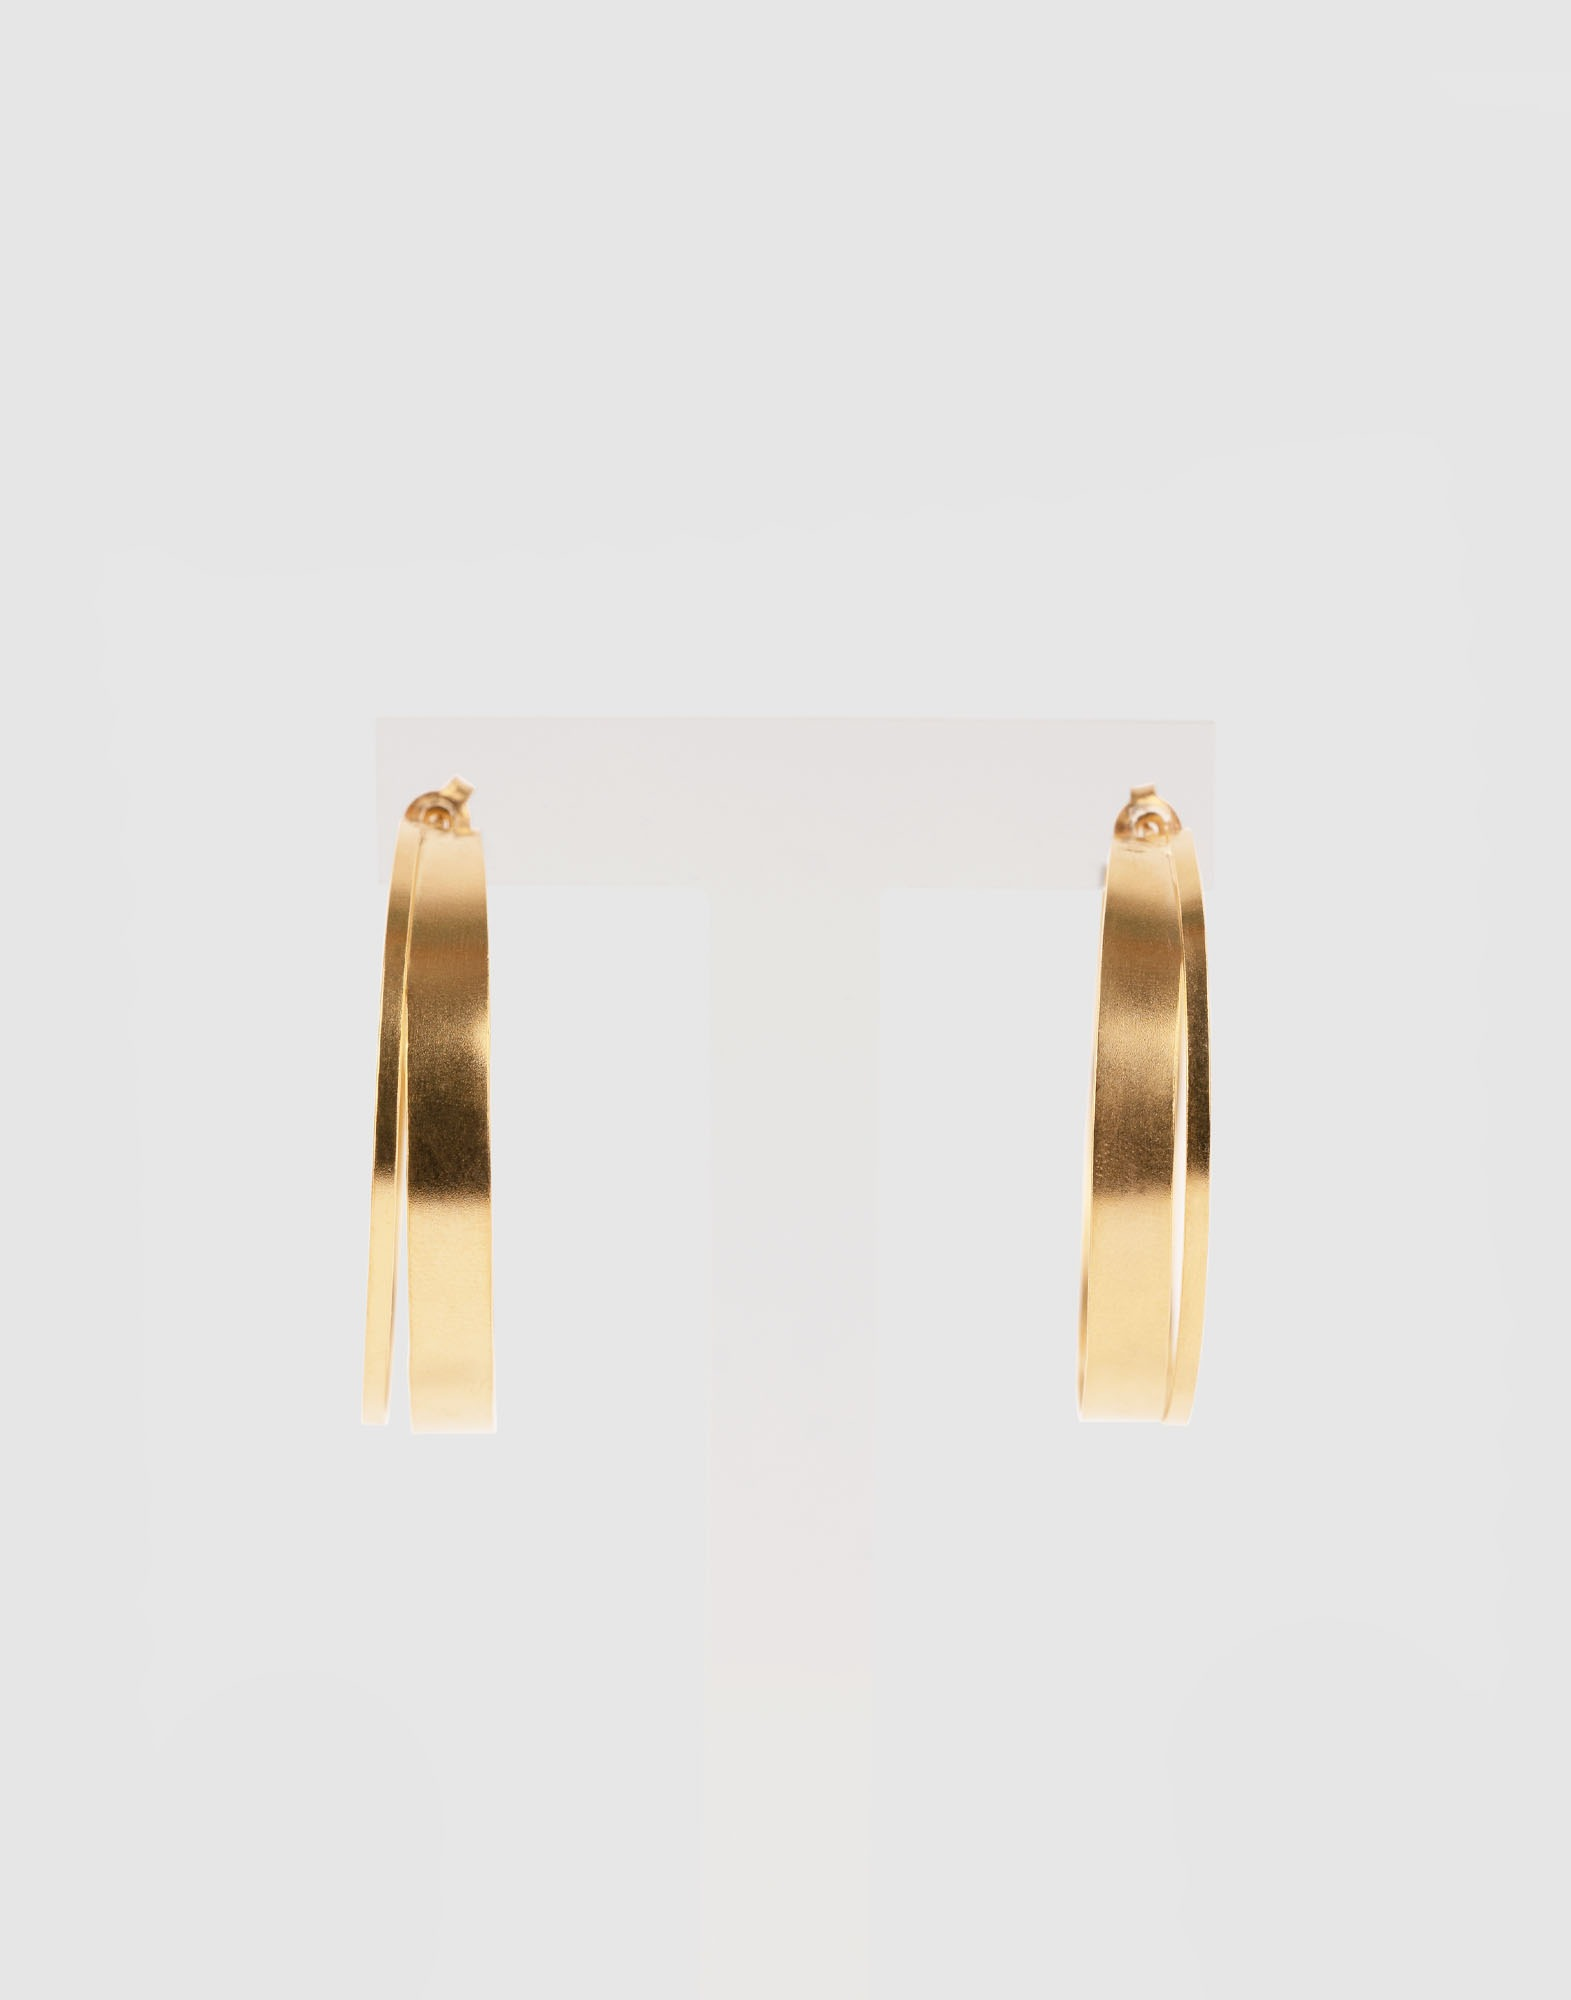 ring earring (18k gold plated)